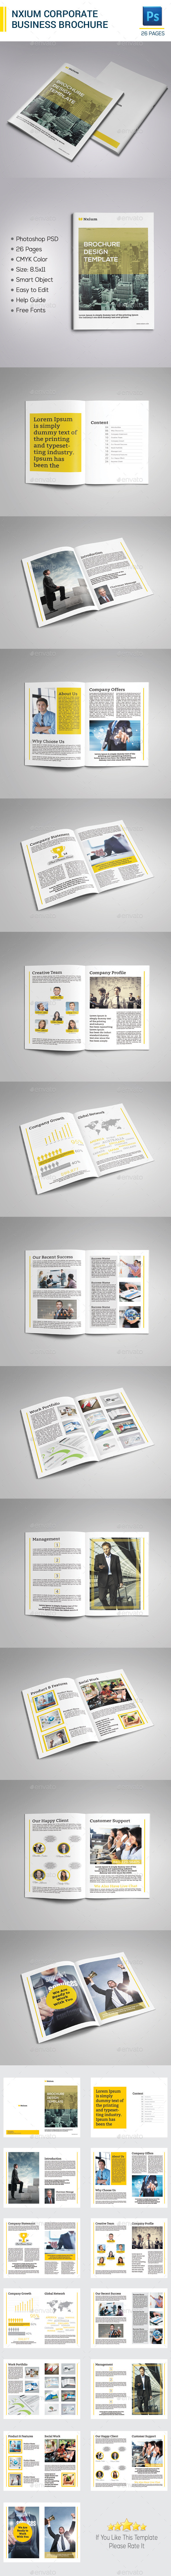 Nxium Brochure Template - Corporate Brochures